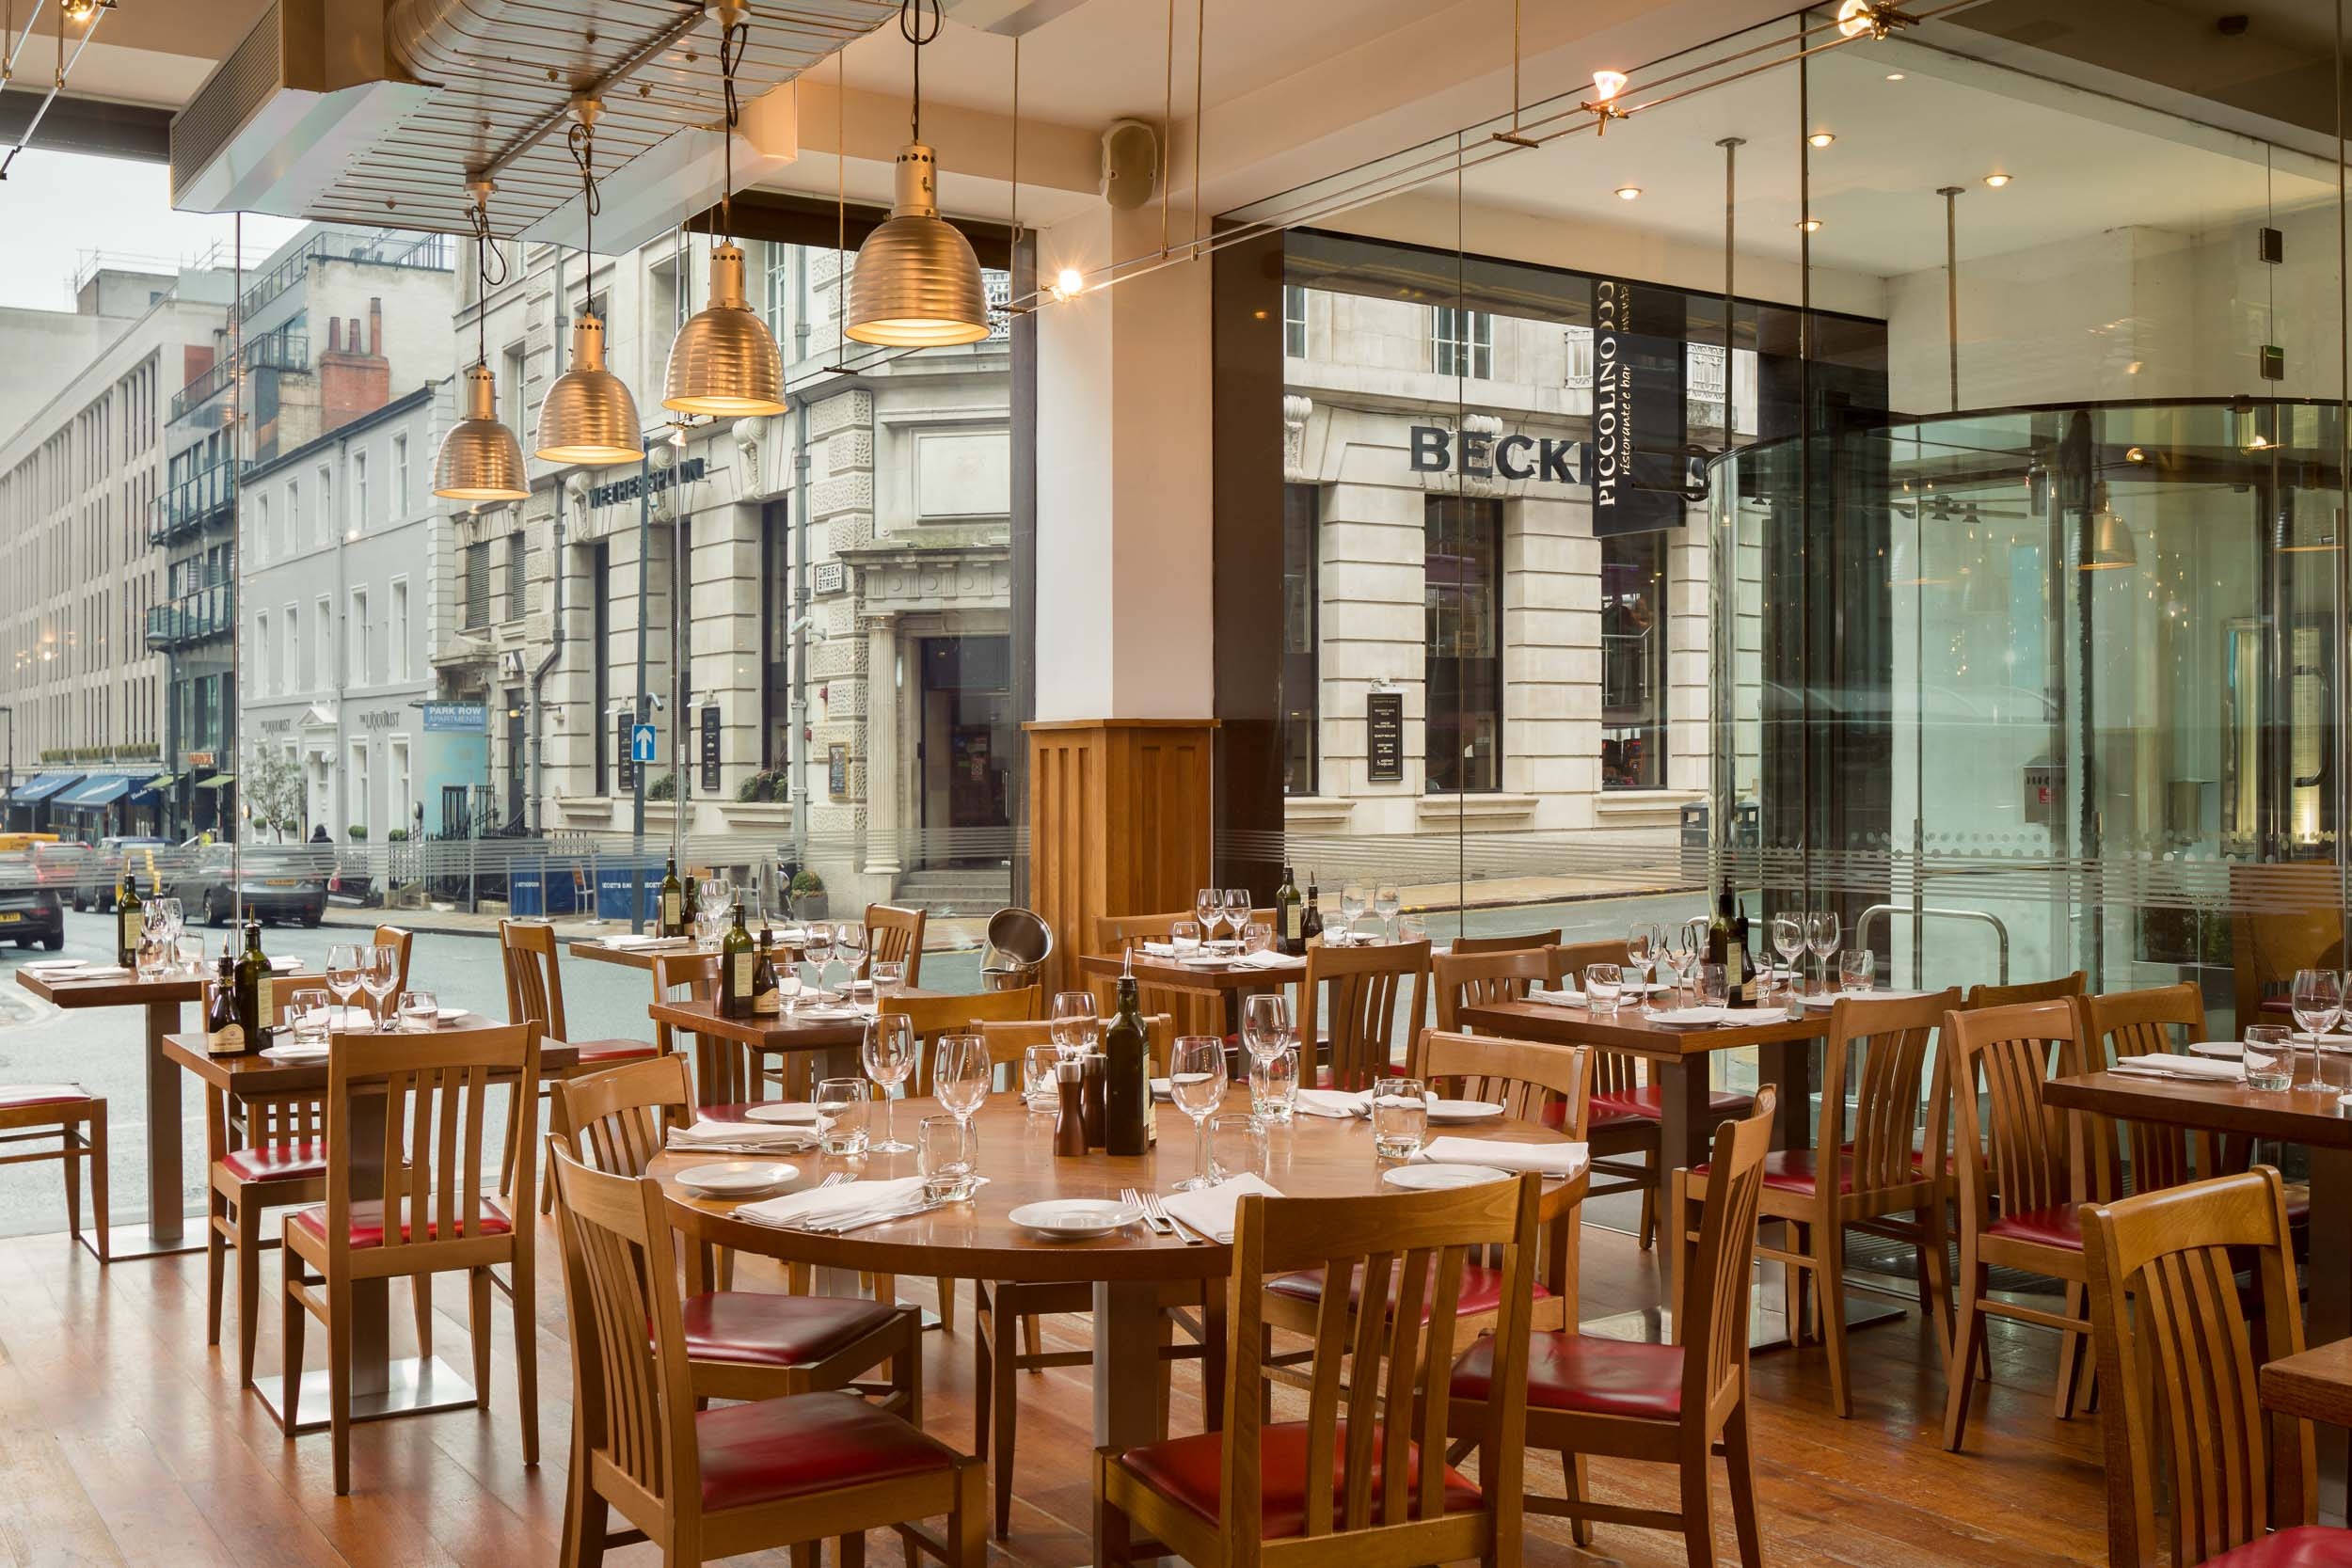 Piccolino Restaurant Bar Commercial Interior, Leeds, West Yorkshire, UK